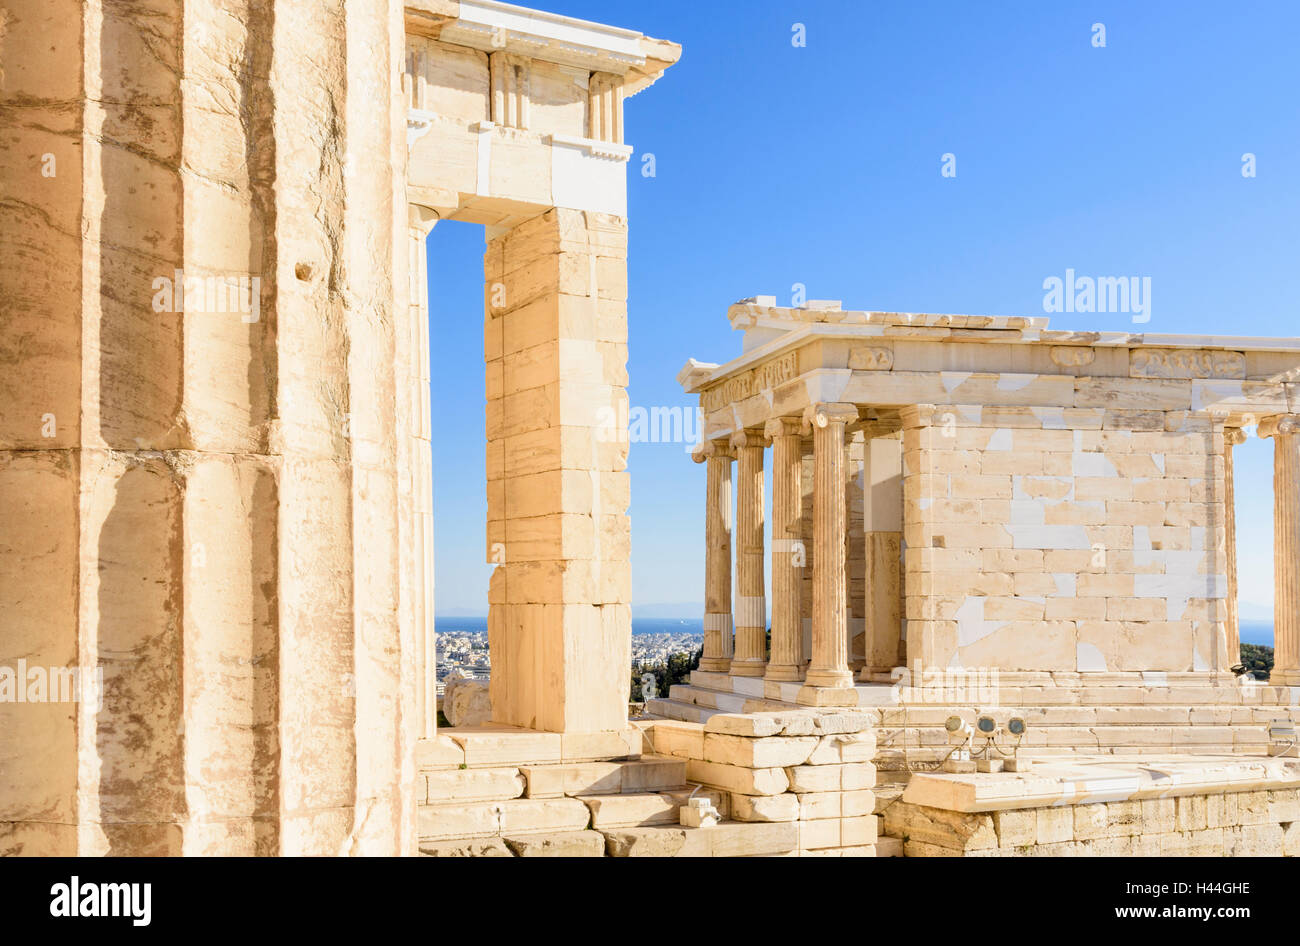 Detail of the Propylaea and the Ionic Temple of Athena Nike on the Acropolis, Athens, Greece Stock Photo